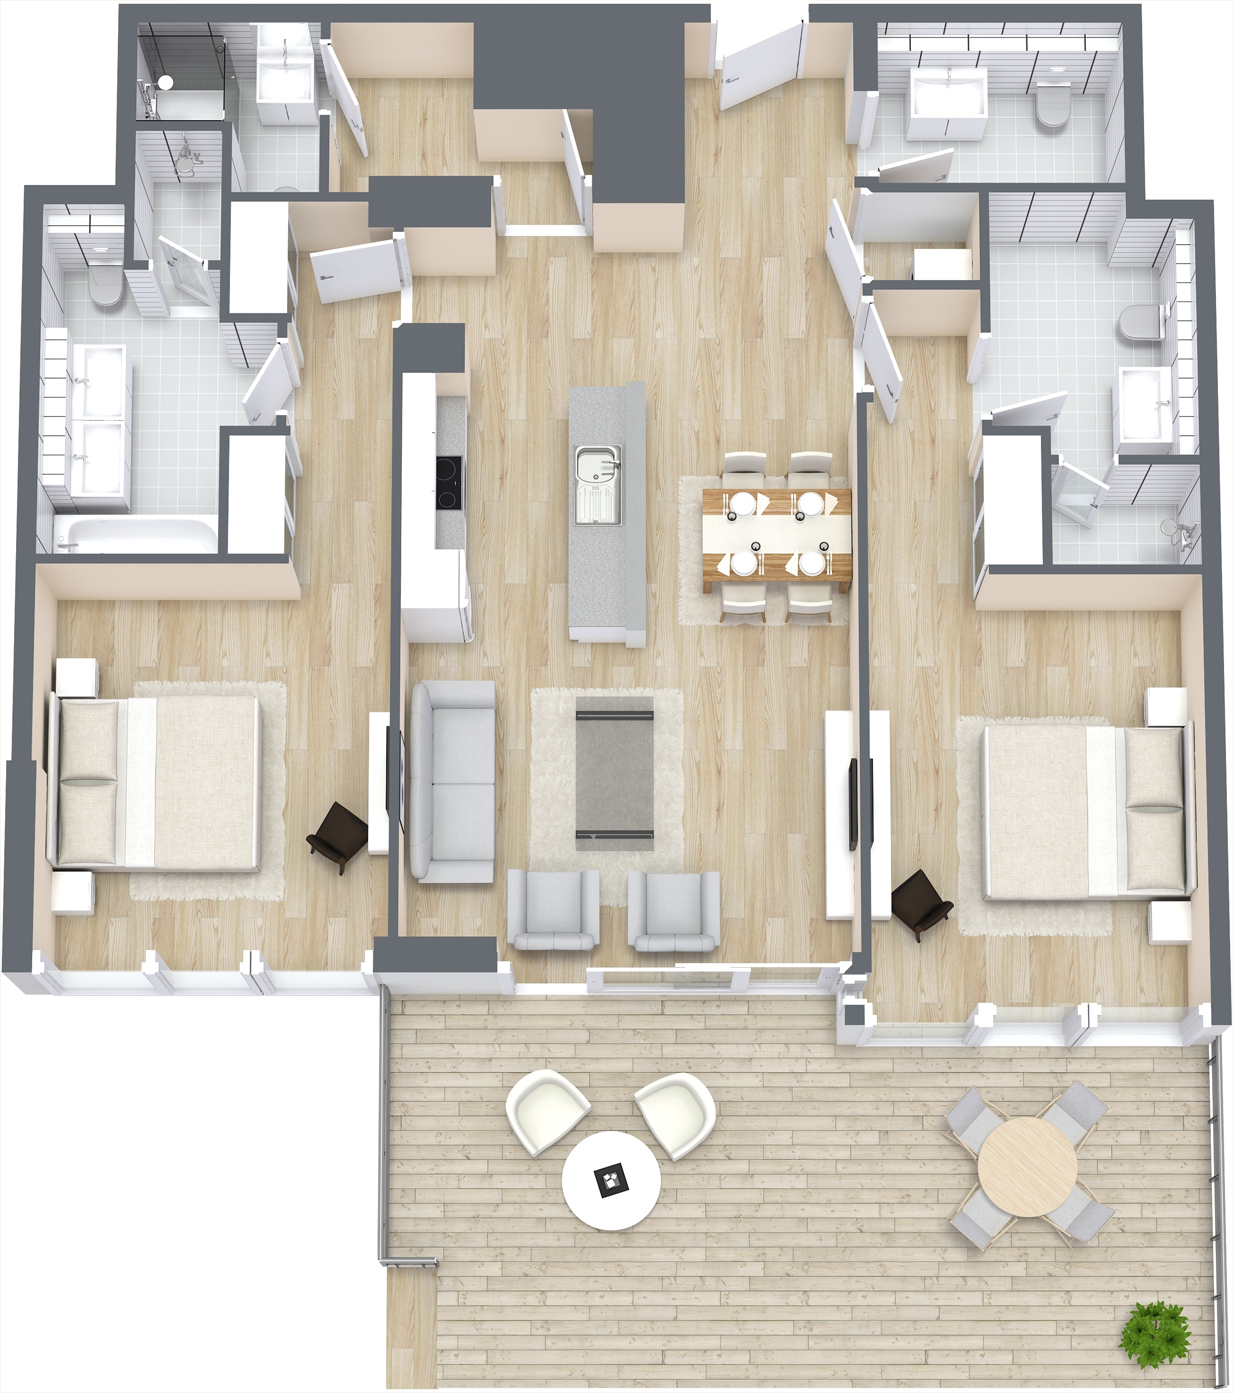 2 Bedroom Apartment Type A, Size 1346 sq ft